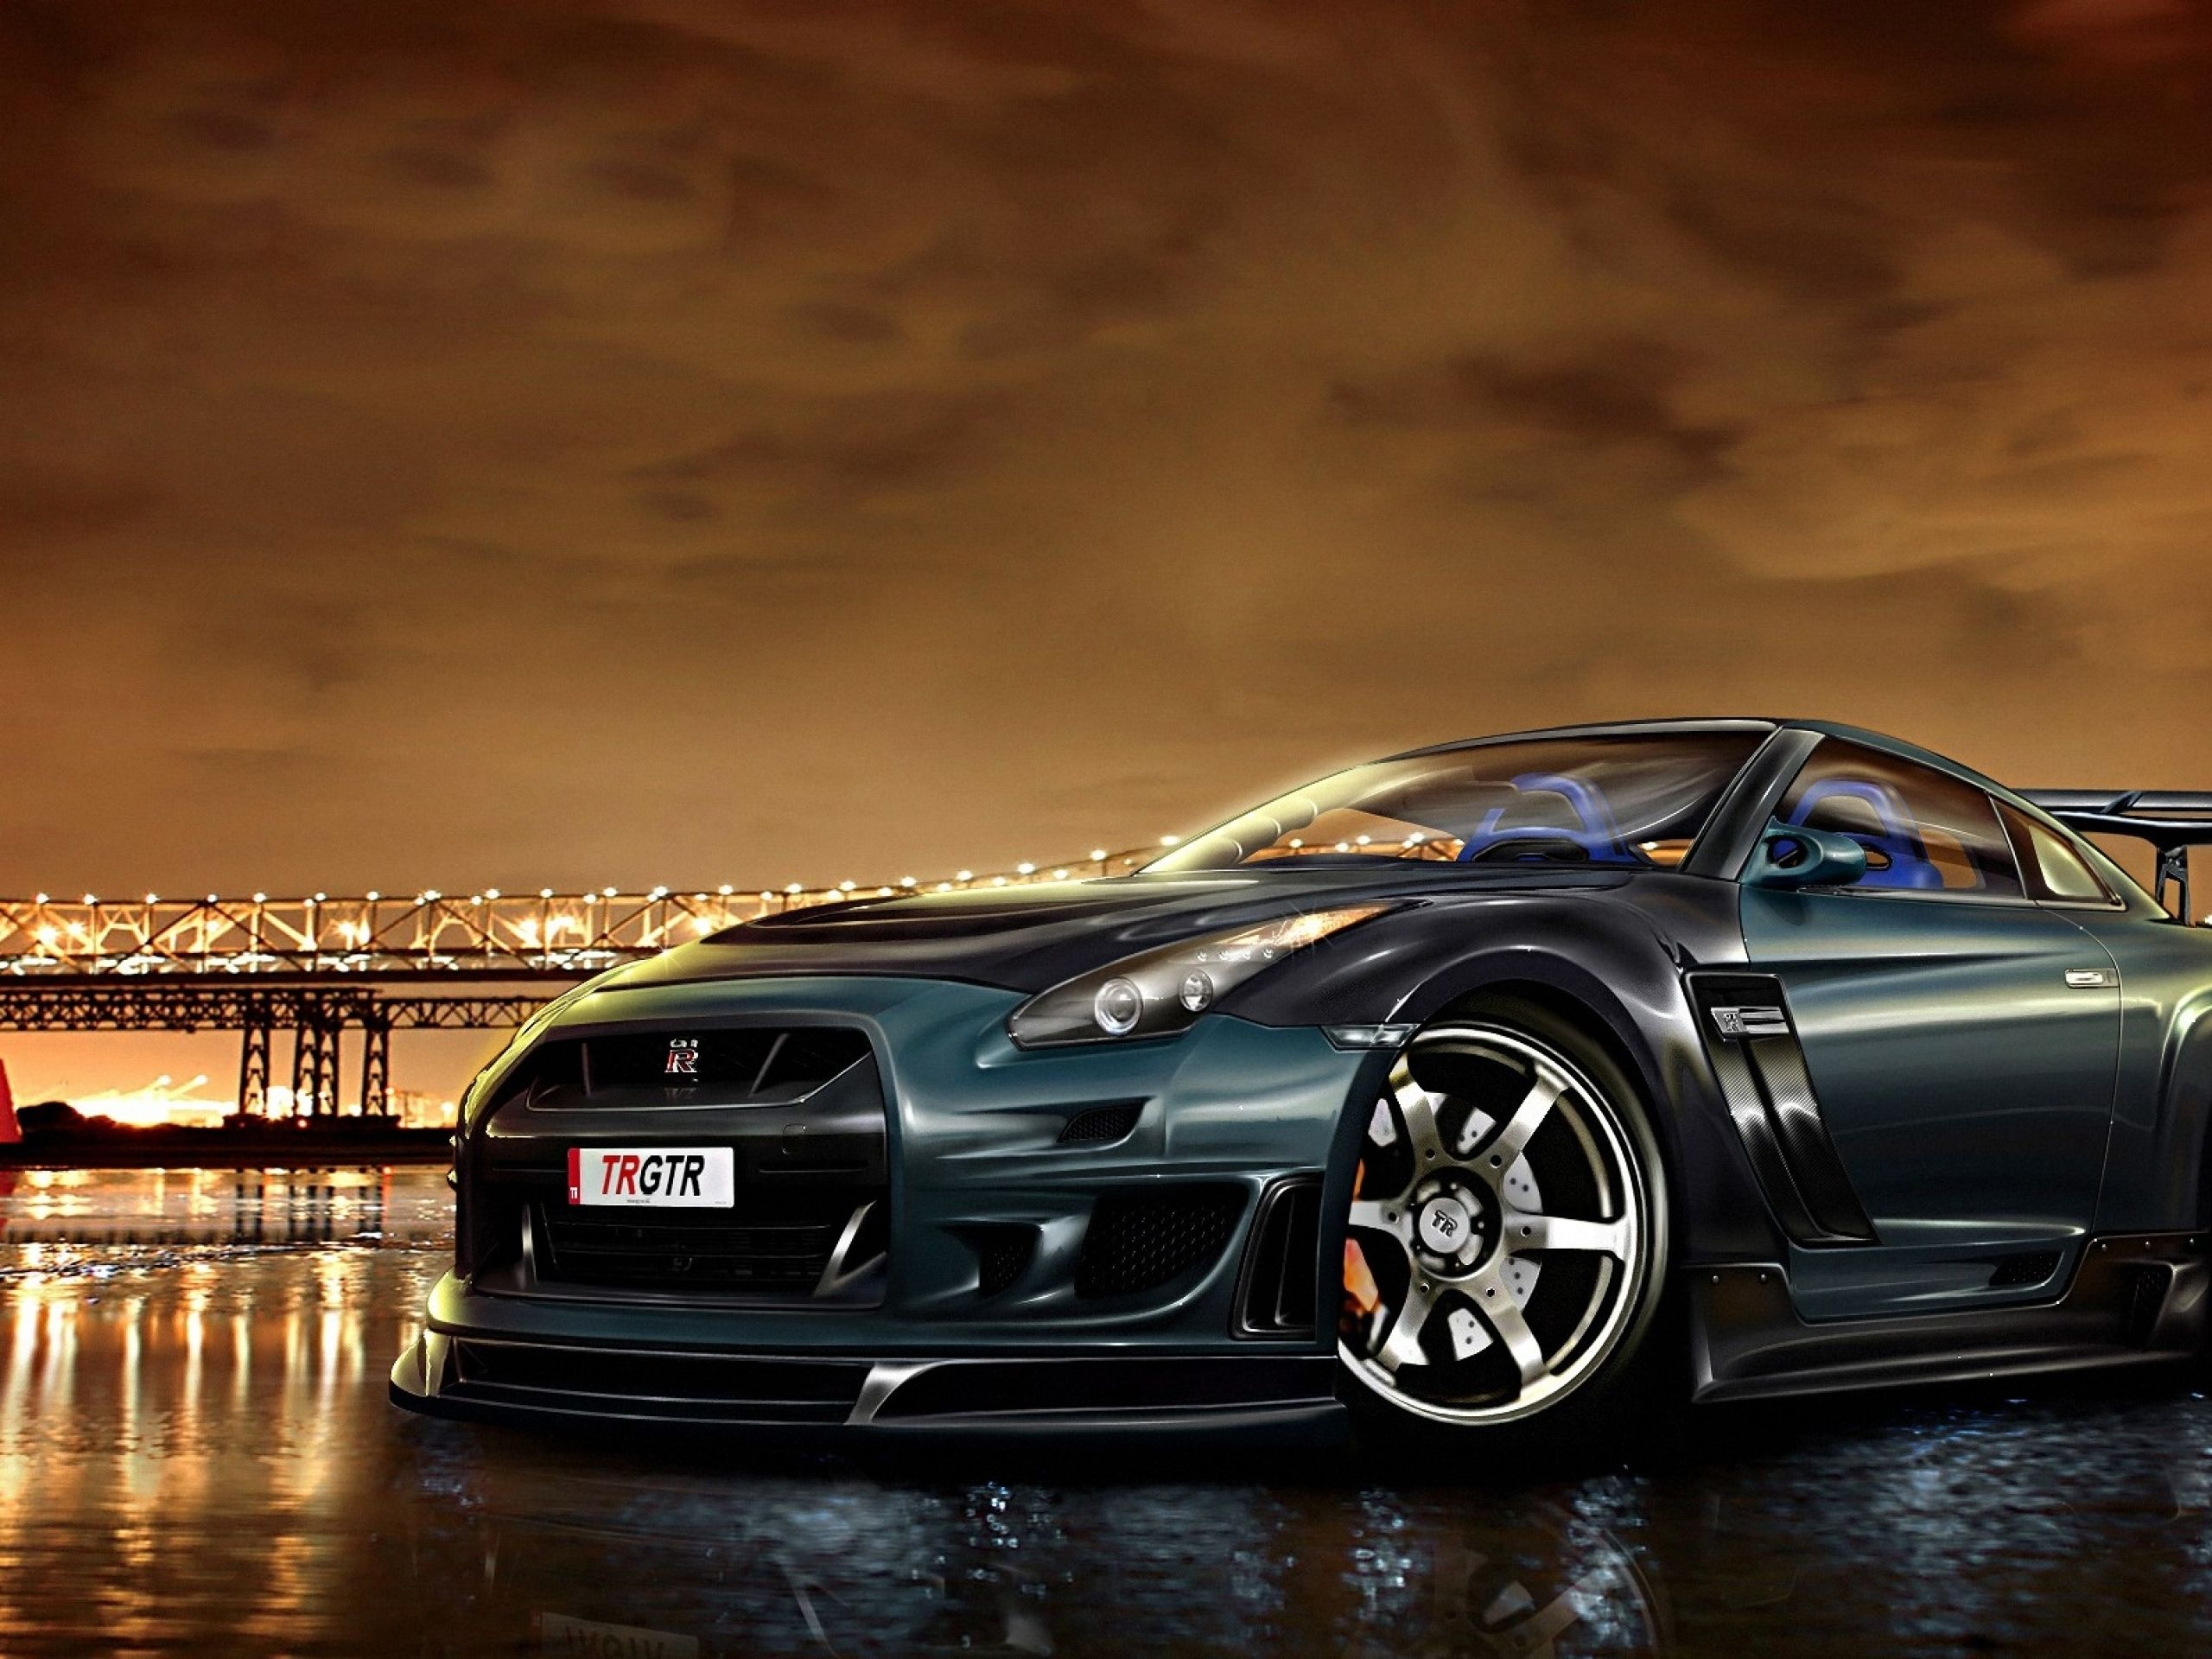 Awesome Nissan GTR Sport Car Hd Wallpaper #nissangtr #cars #freewallpapers  Www.yours